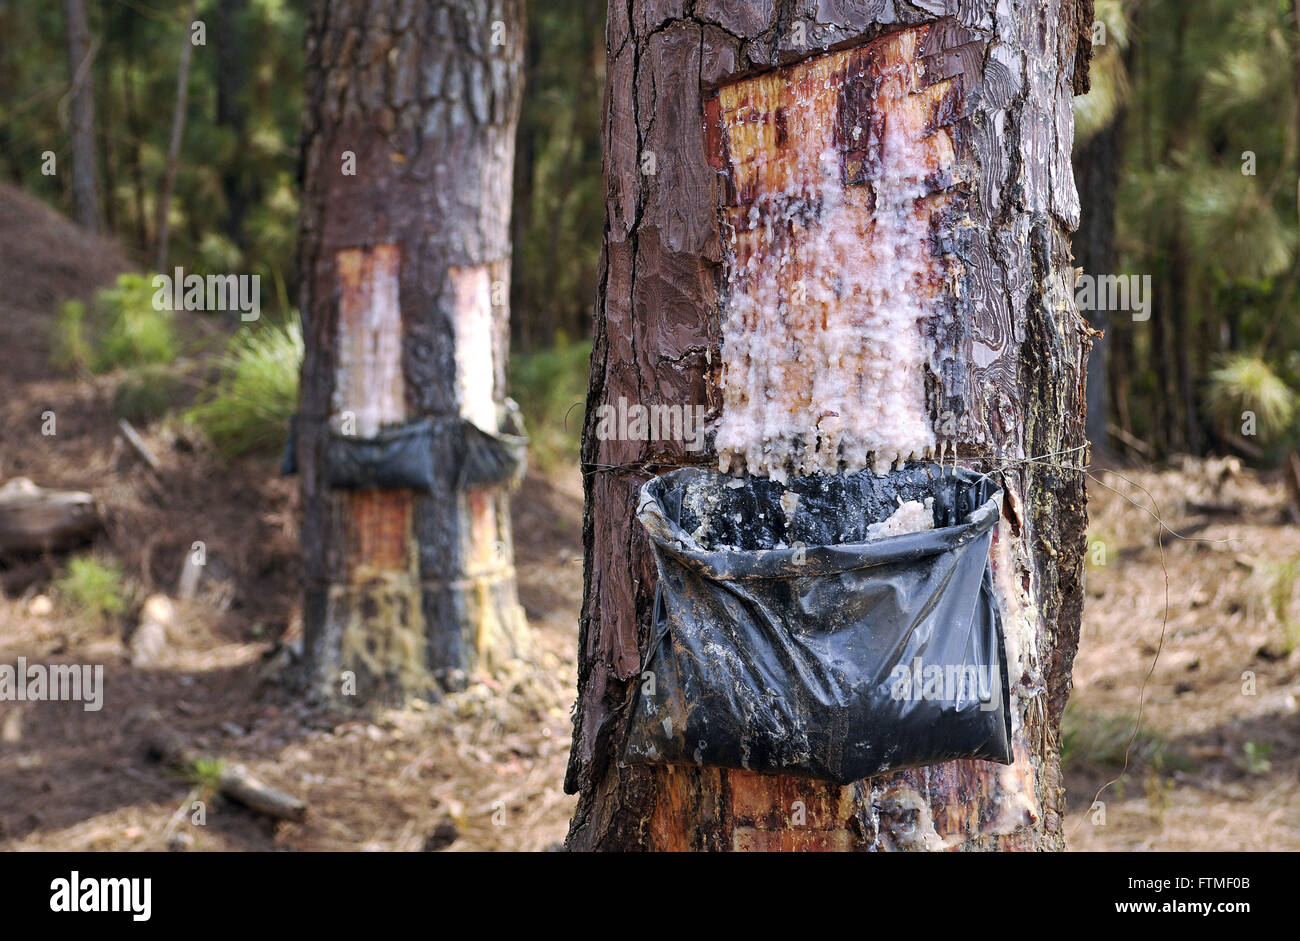 Collecting pine resin in plantation - Stock Image